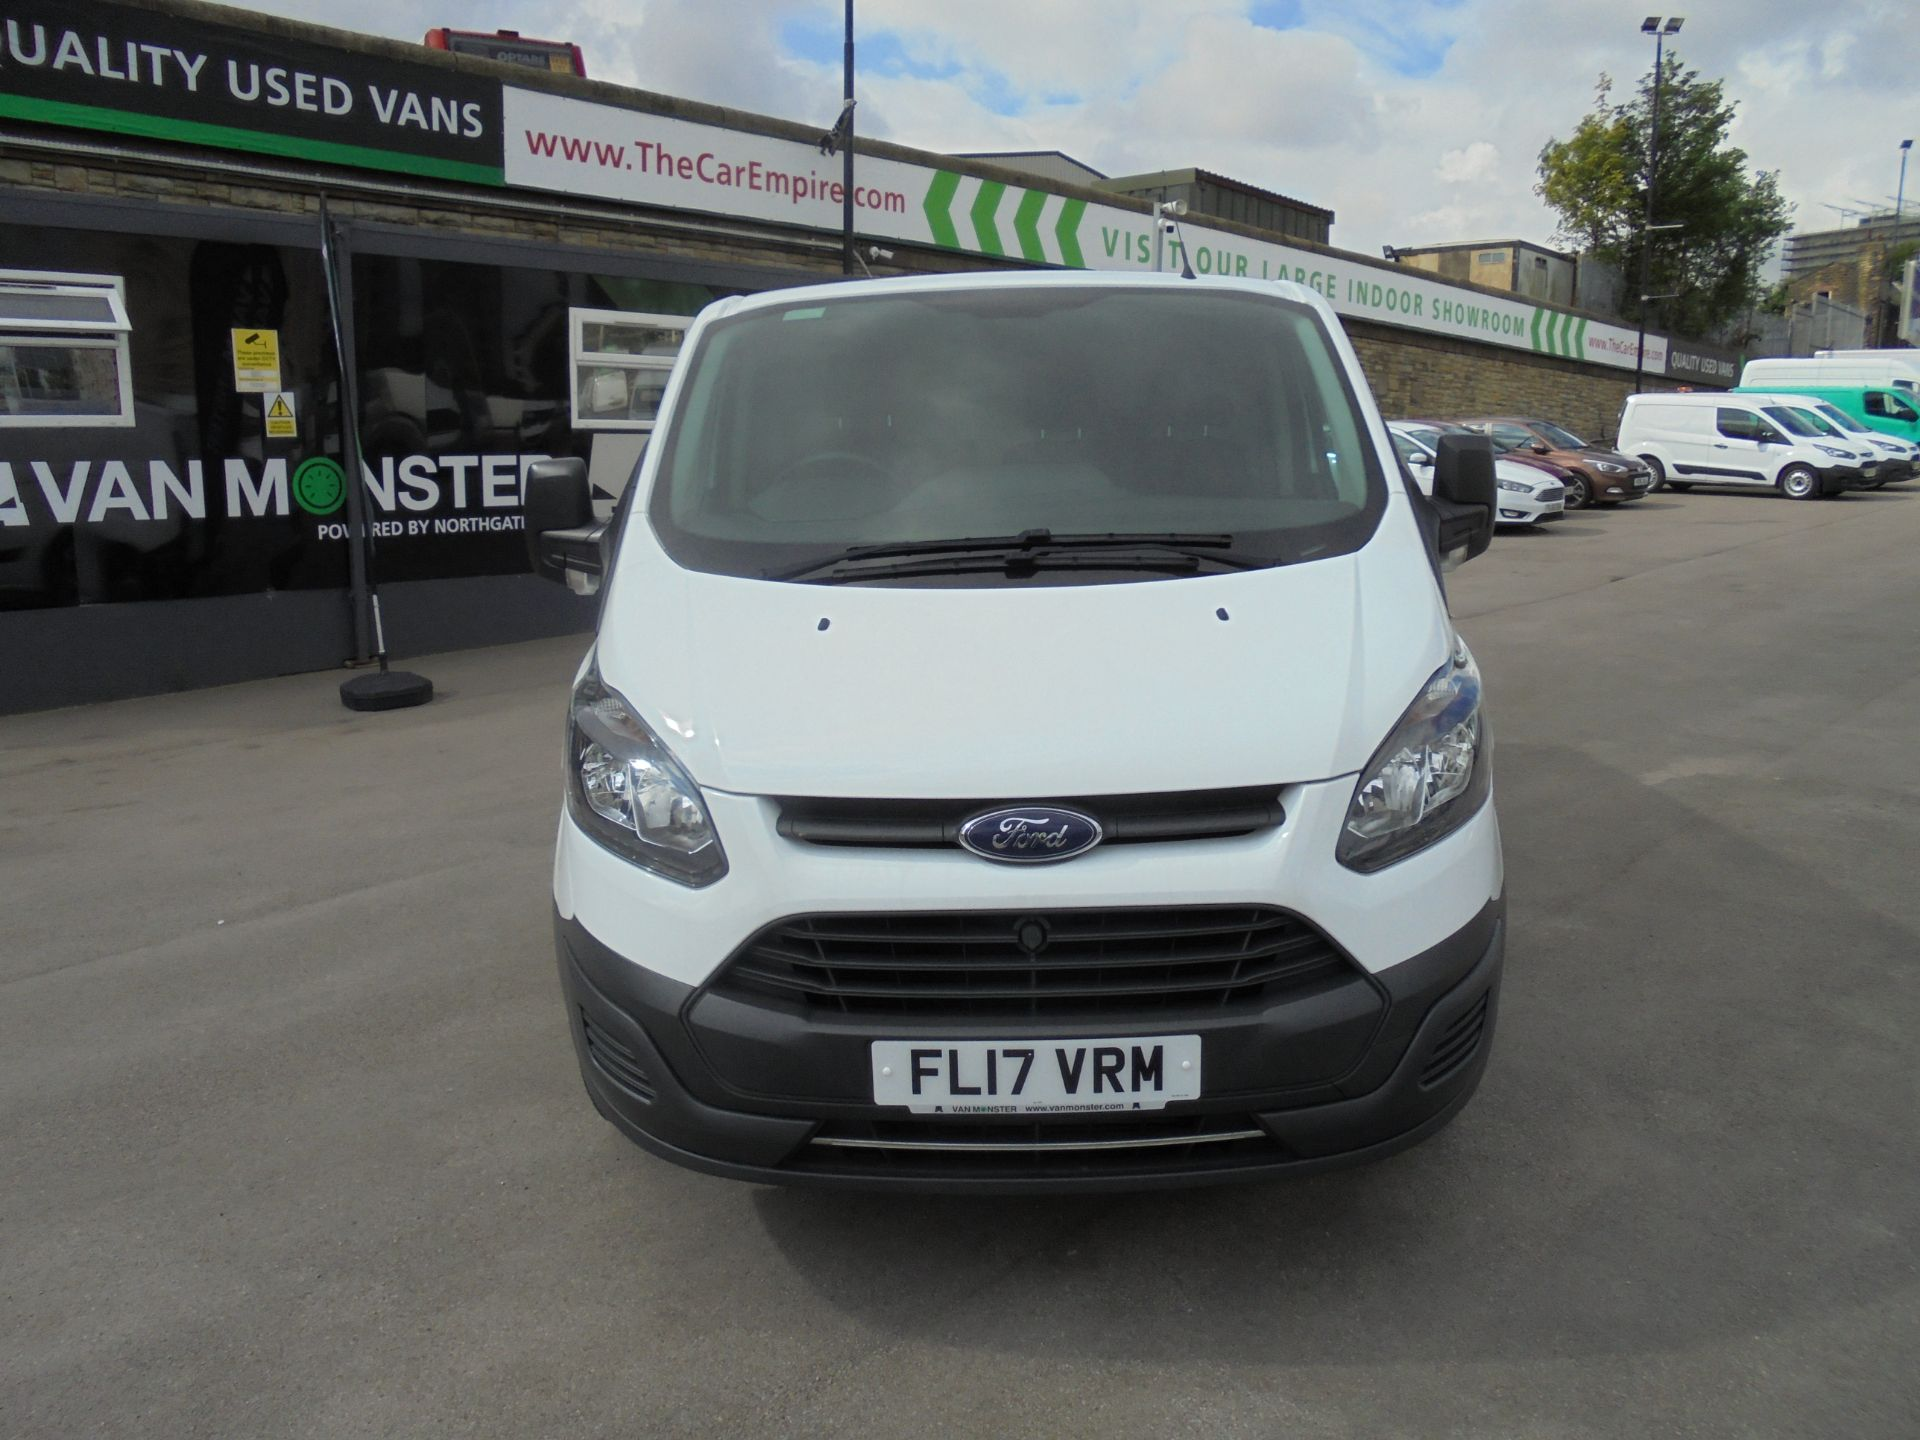 2017 Ford Transit Custom 2.0 Tdci 105Ps Low Roof Van VALUE RANGE VEHICLE CONDITION REFLECTED IN PRICE* (FL17VRM) Image 2